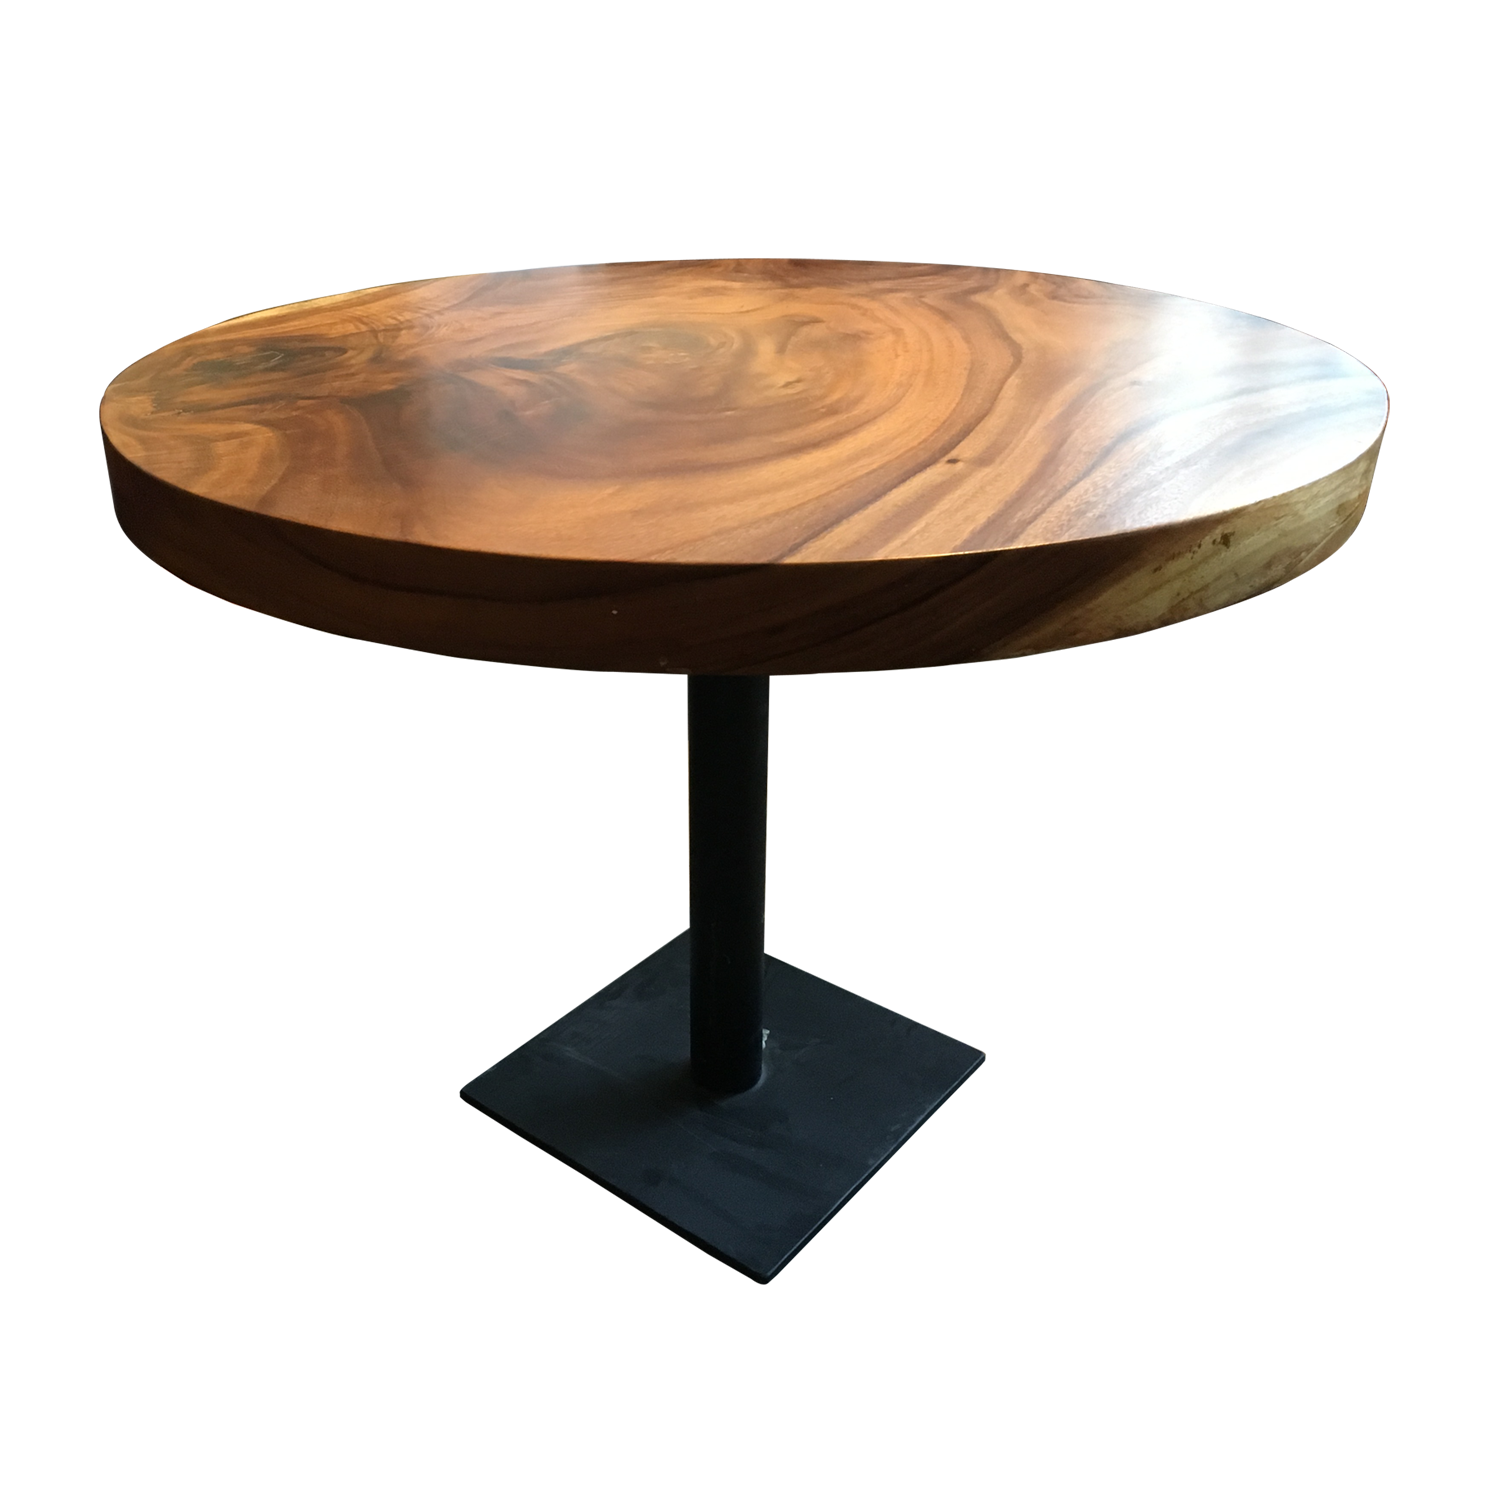 Round Dining Table For 4 6 People Made Of Mango Wood D140 In 2020